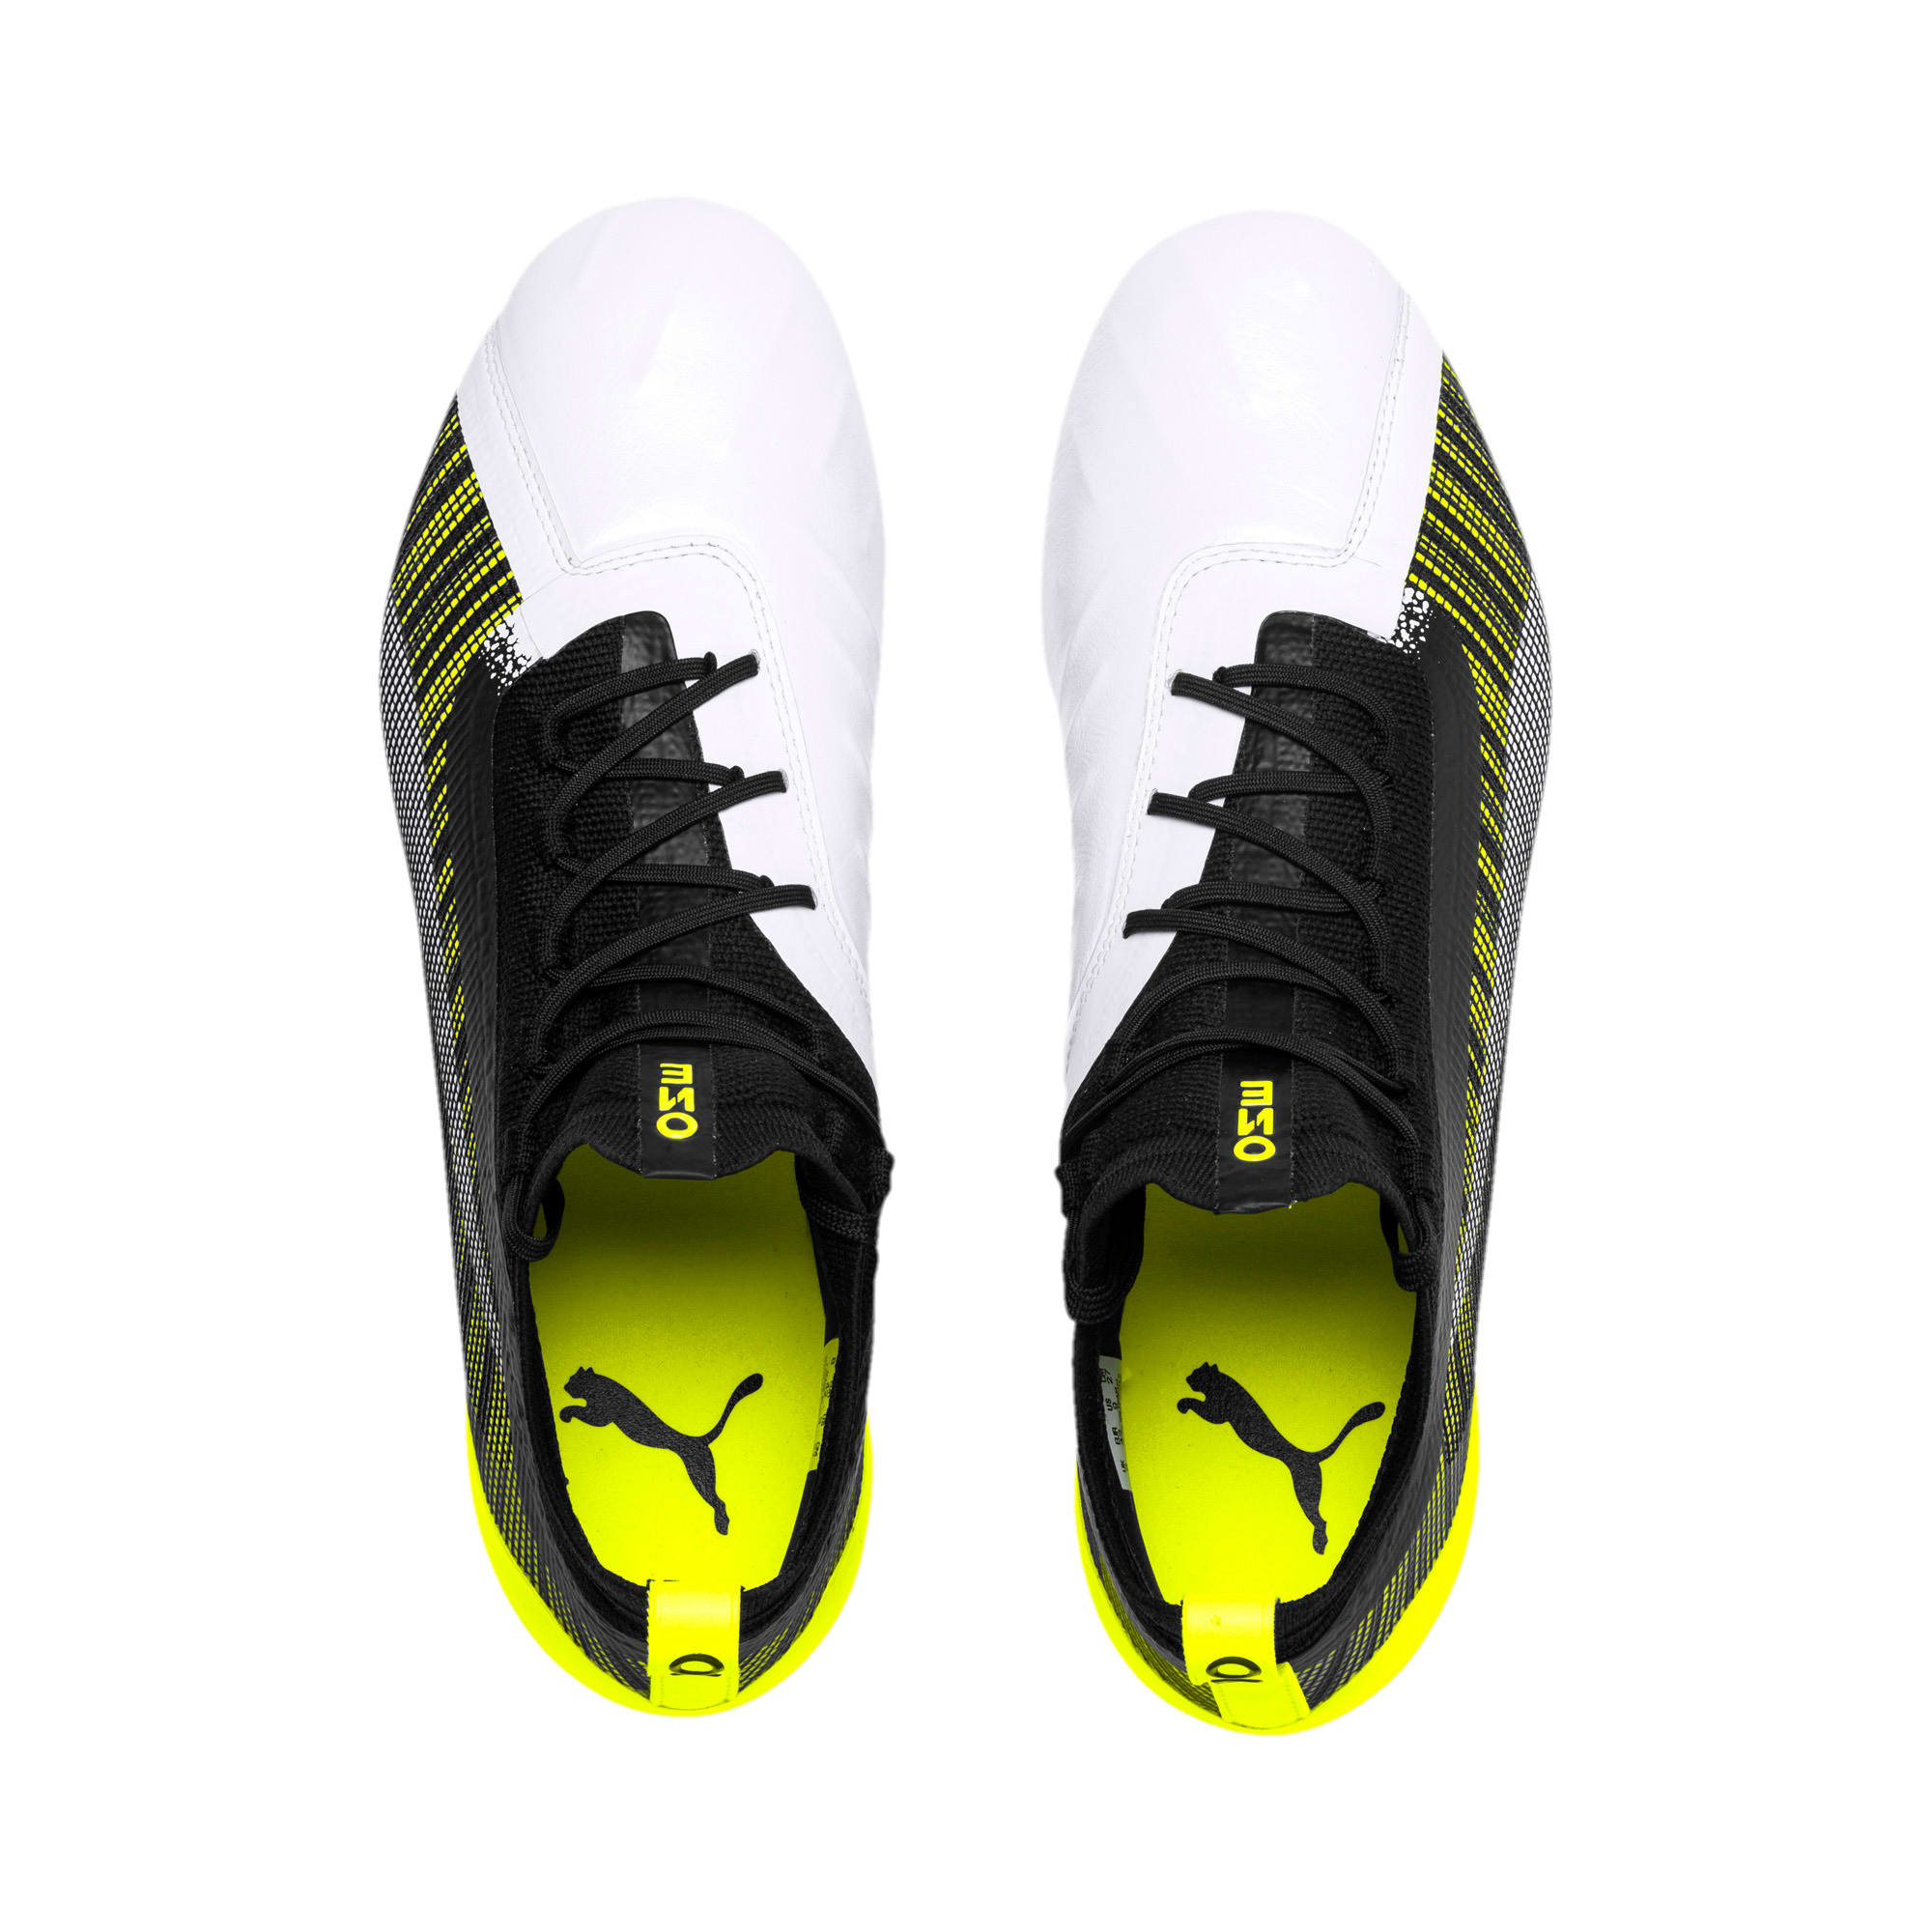 Thumbnail 7 of PUMA ONE 5.1 FG/AG Men's Soccer Cleats, White-Black-Yellow Alert, medium